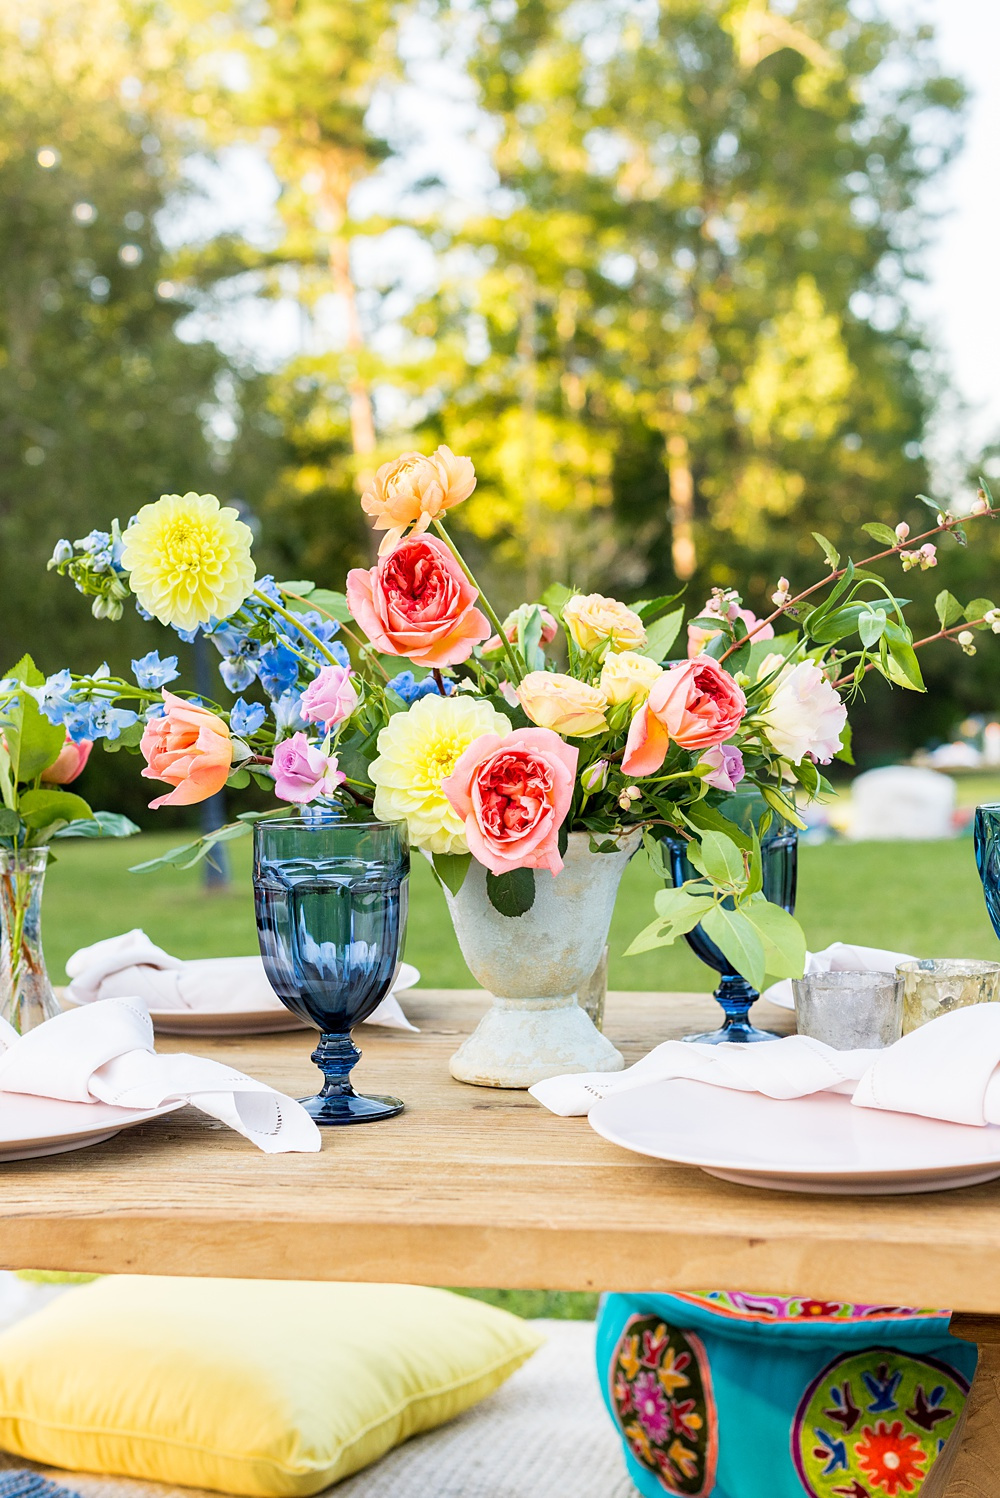 Step inside this colorful outdoor bohemian thirtieth birthday party. Full of color, lush garden flowers, and the yummiest vegan unicorn confetti cakes you ever did find! Click through for the details. Mikkel Paige Photography #gardenparty #birthdayparty #bohemianparty #unicornparty #styledshoot #backyardparty #flowers | glitterinc.com